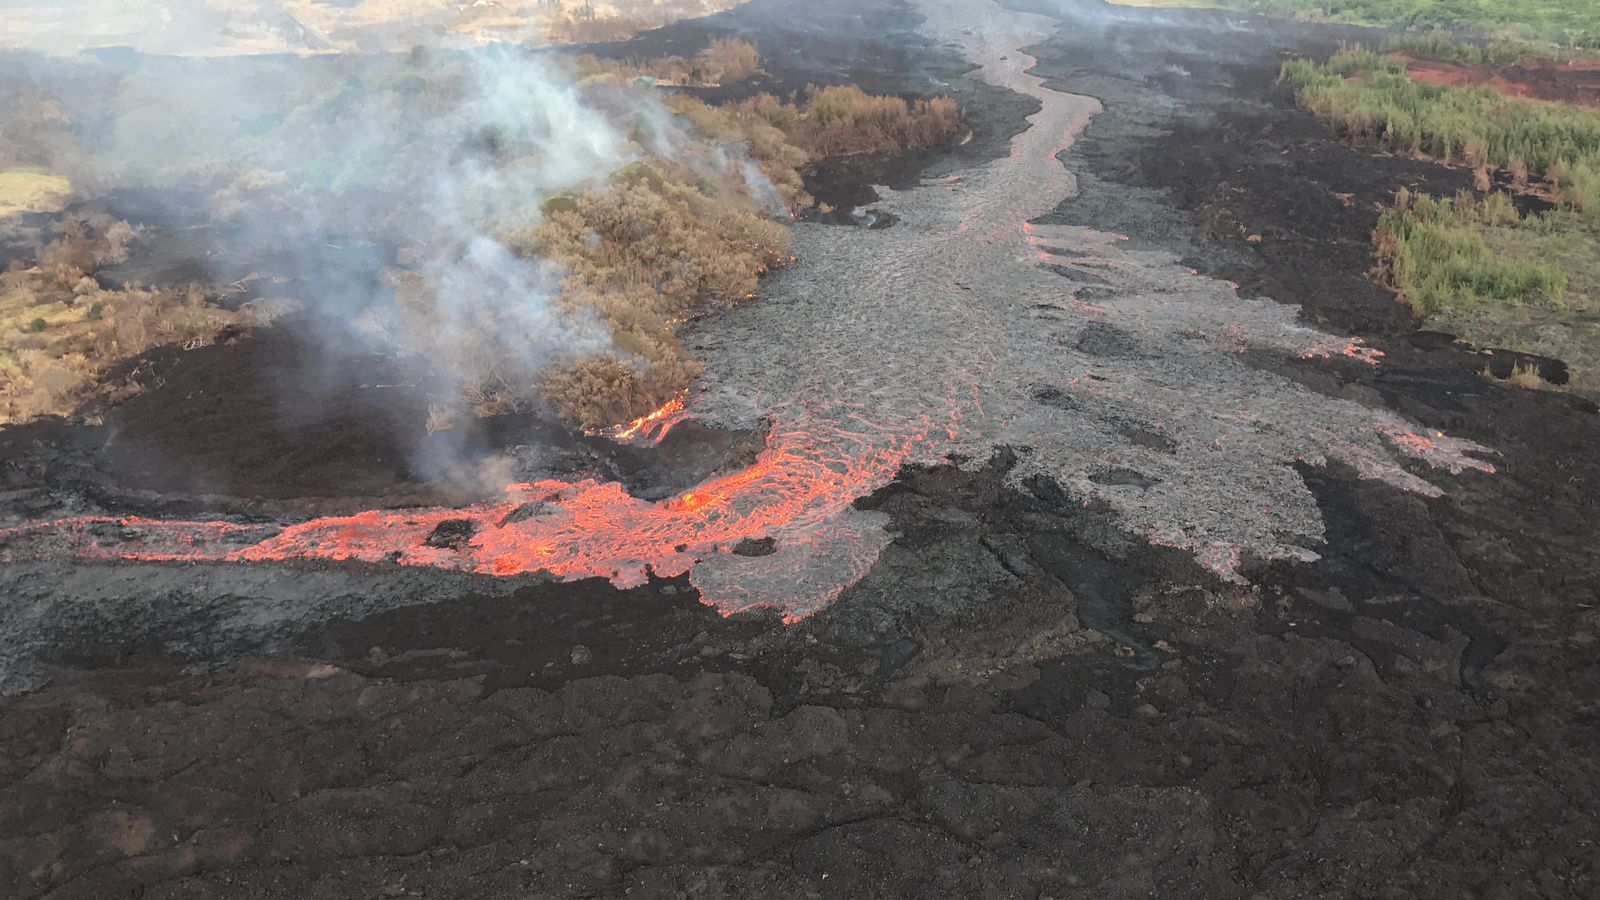 Kilauea East rift zone - evolution of blockage of the channelized flow, with lava overflows - USGS pictures 03.07.2018